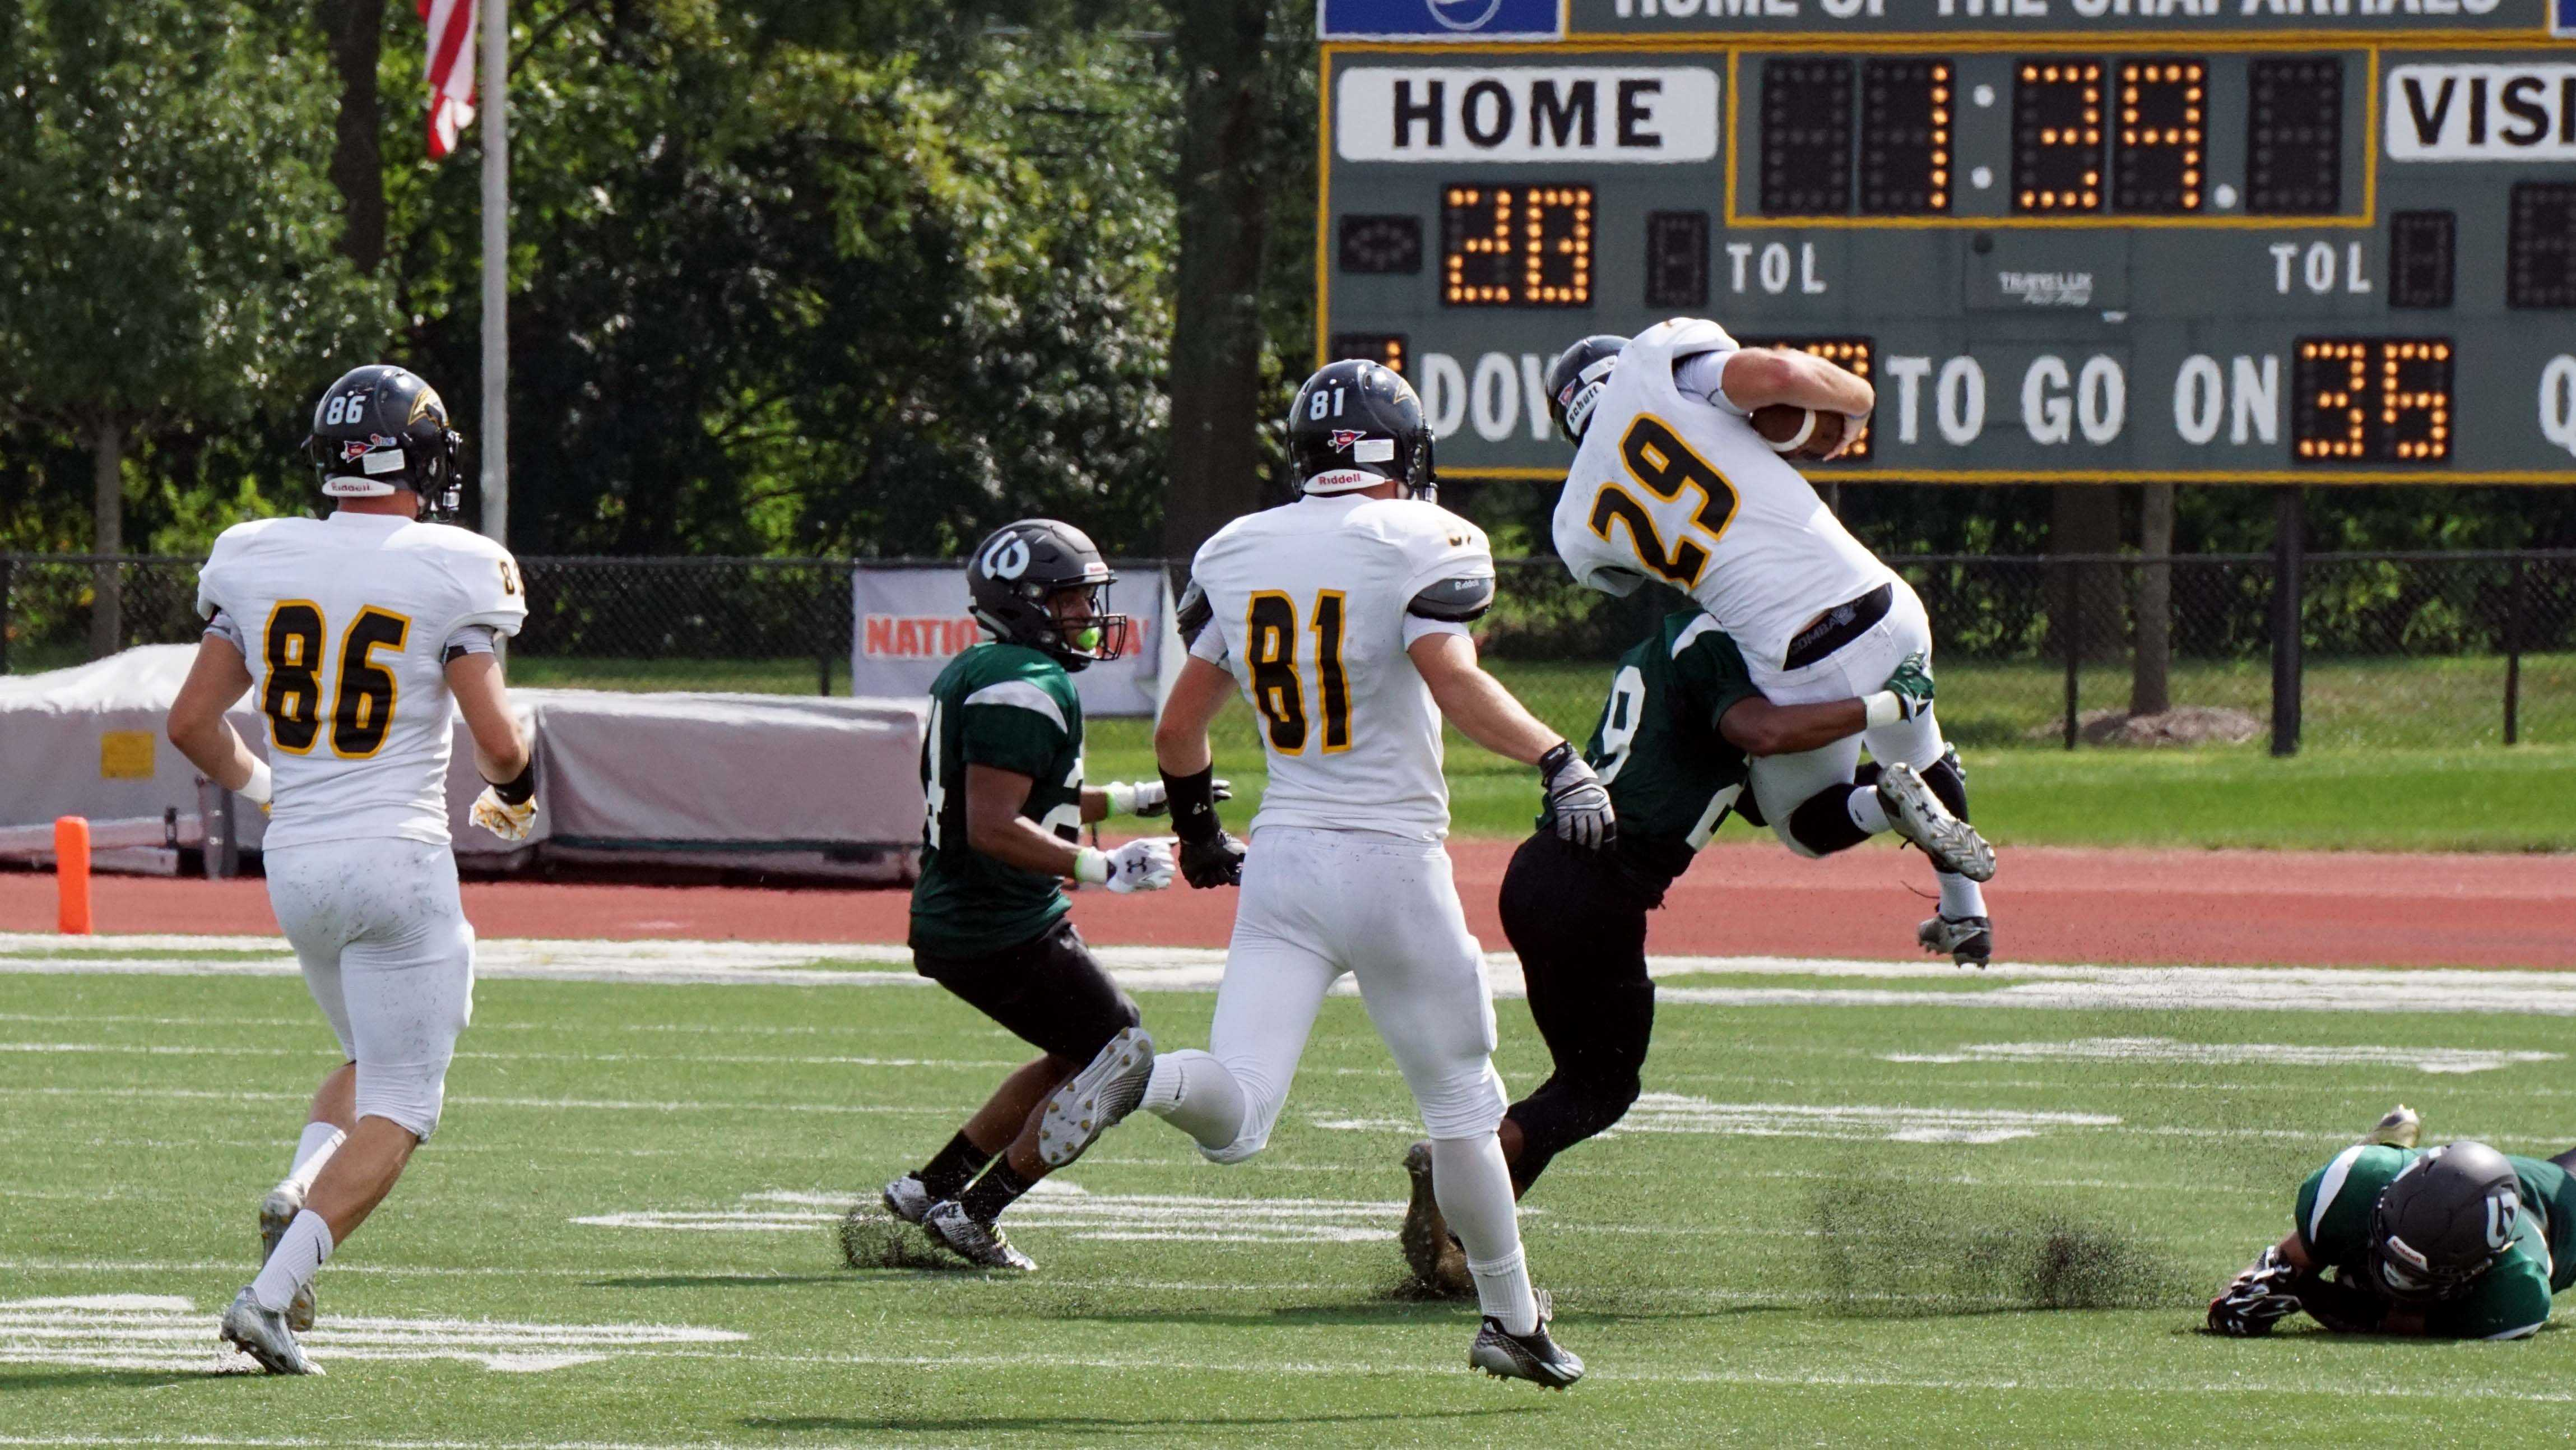 Defensive Back #29 Kyler Davis takes down University of Wisconsin Oshkosh player at the College of DuPage on Sept. 7.